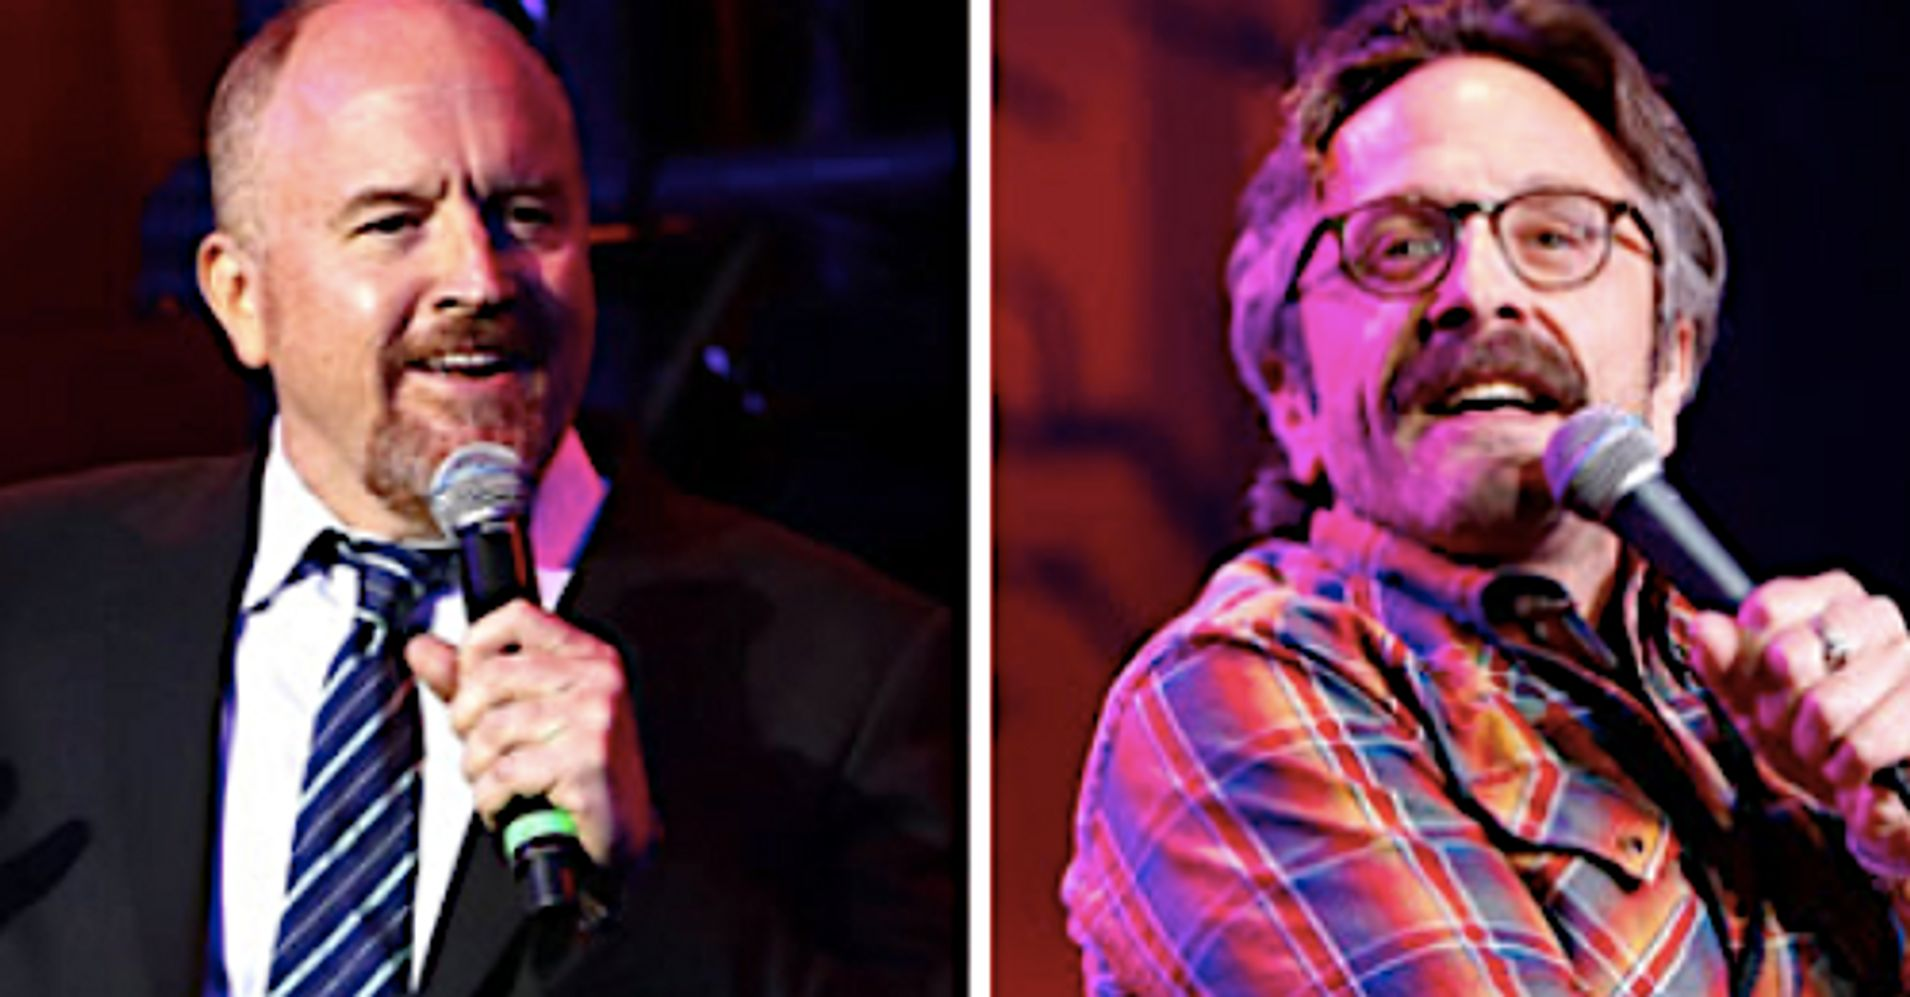 'I'm Disappointed In My Friend,' Comedian Marc Maron Says Of Louis C.K.